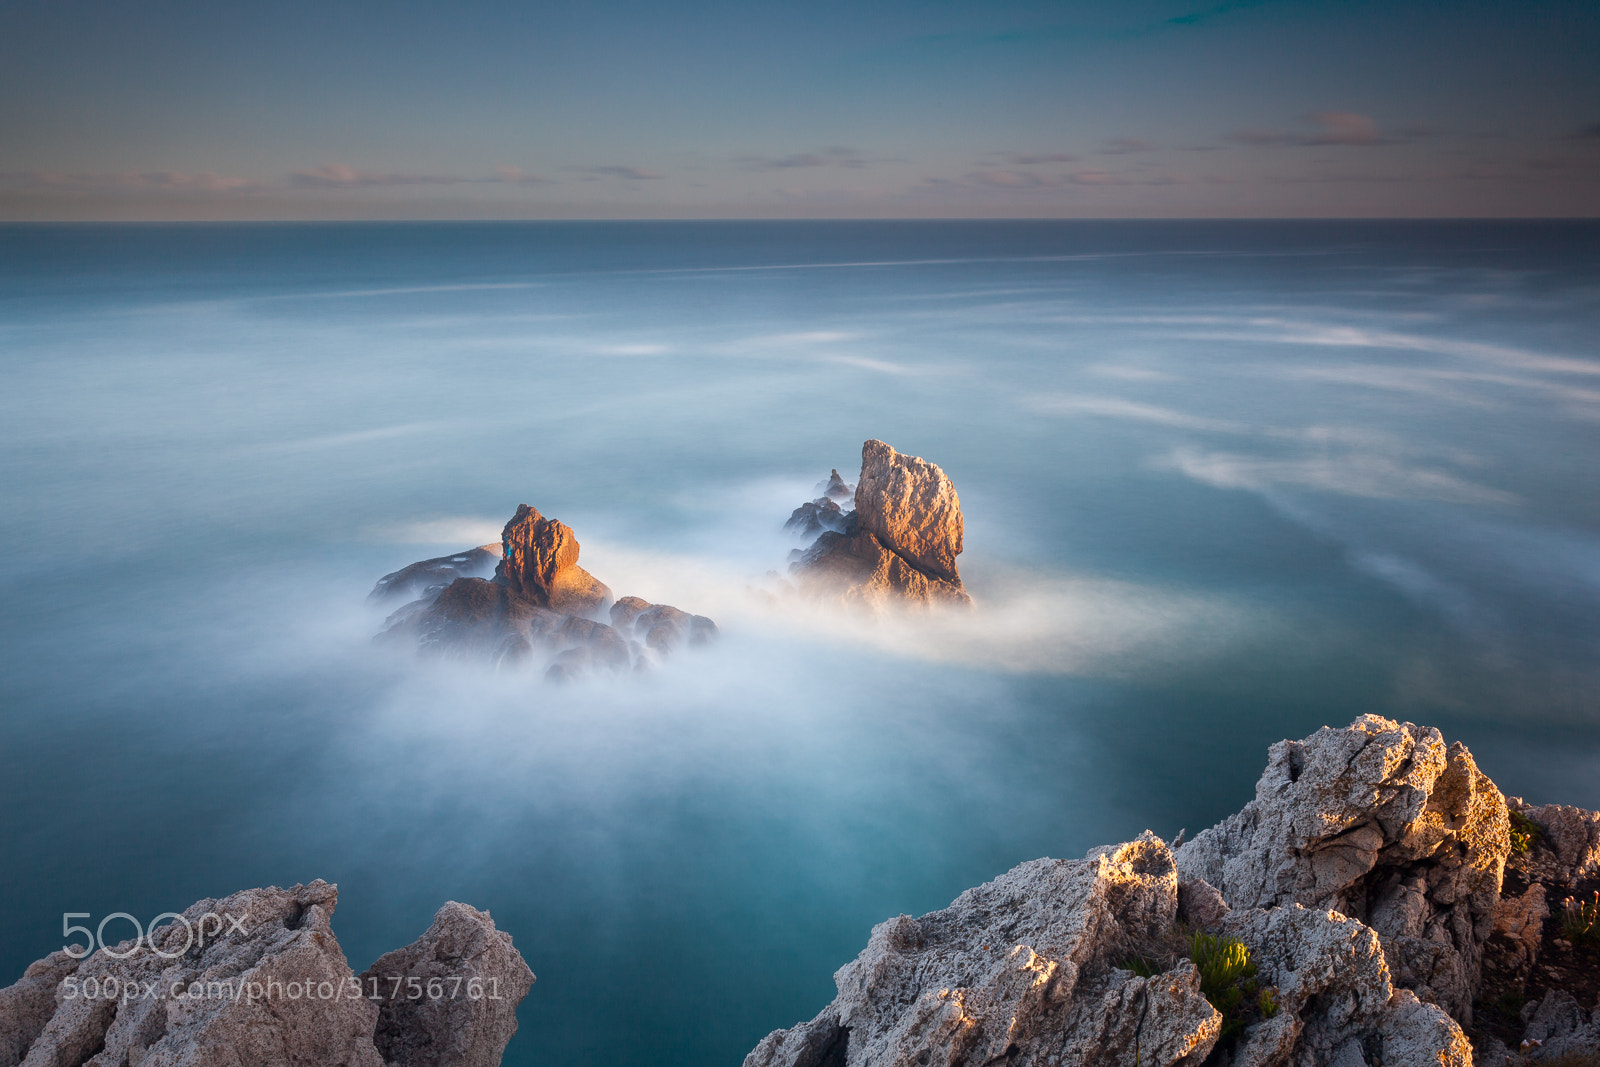 Photograph Little twins at sunrise by Andoni Lamborena on 500px